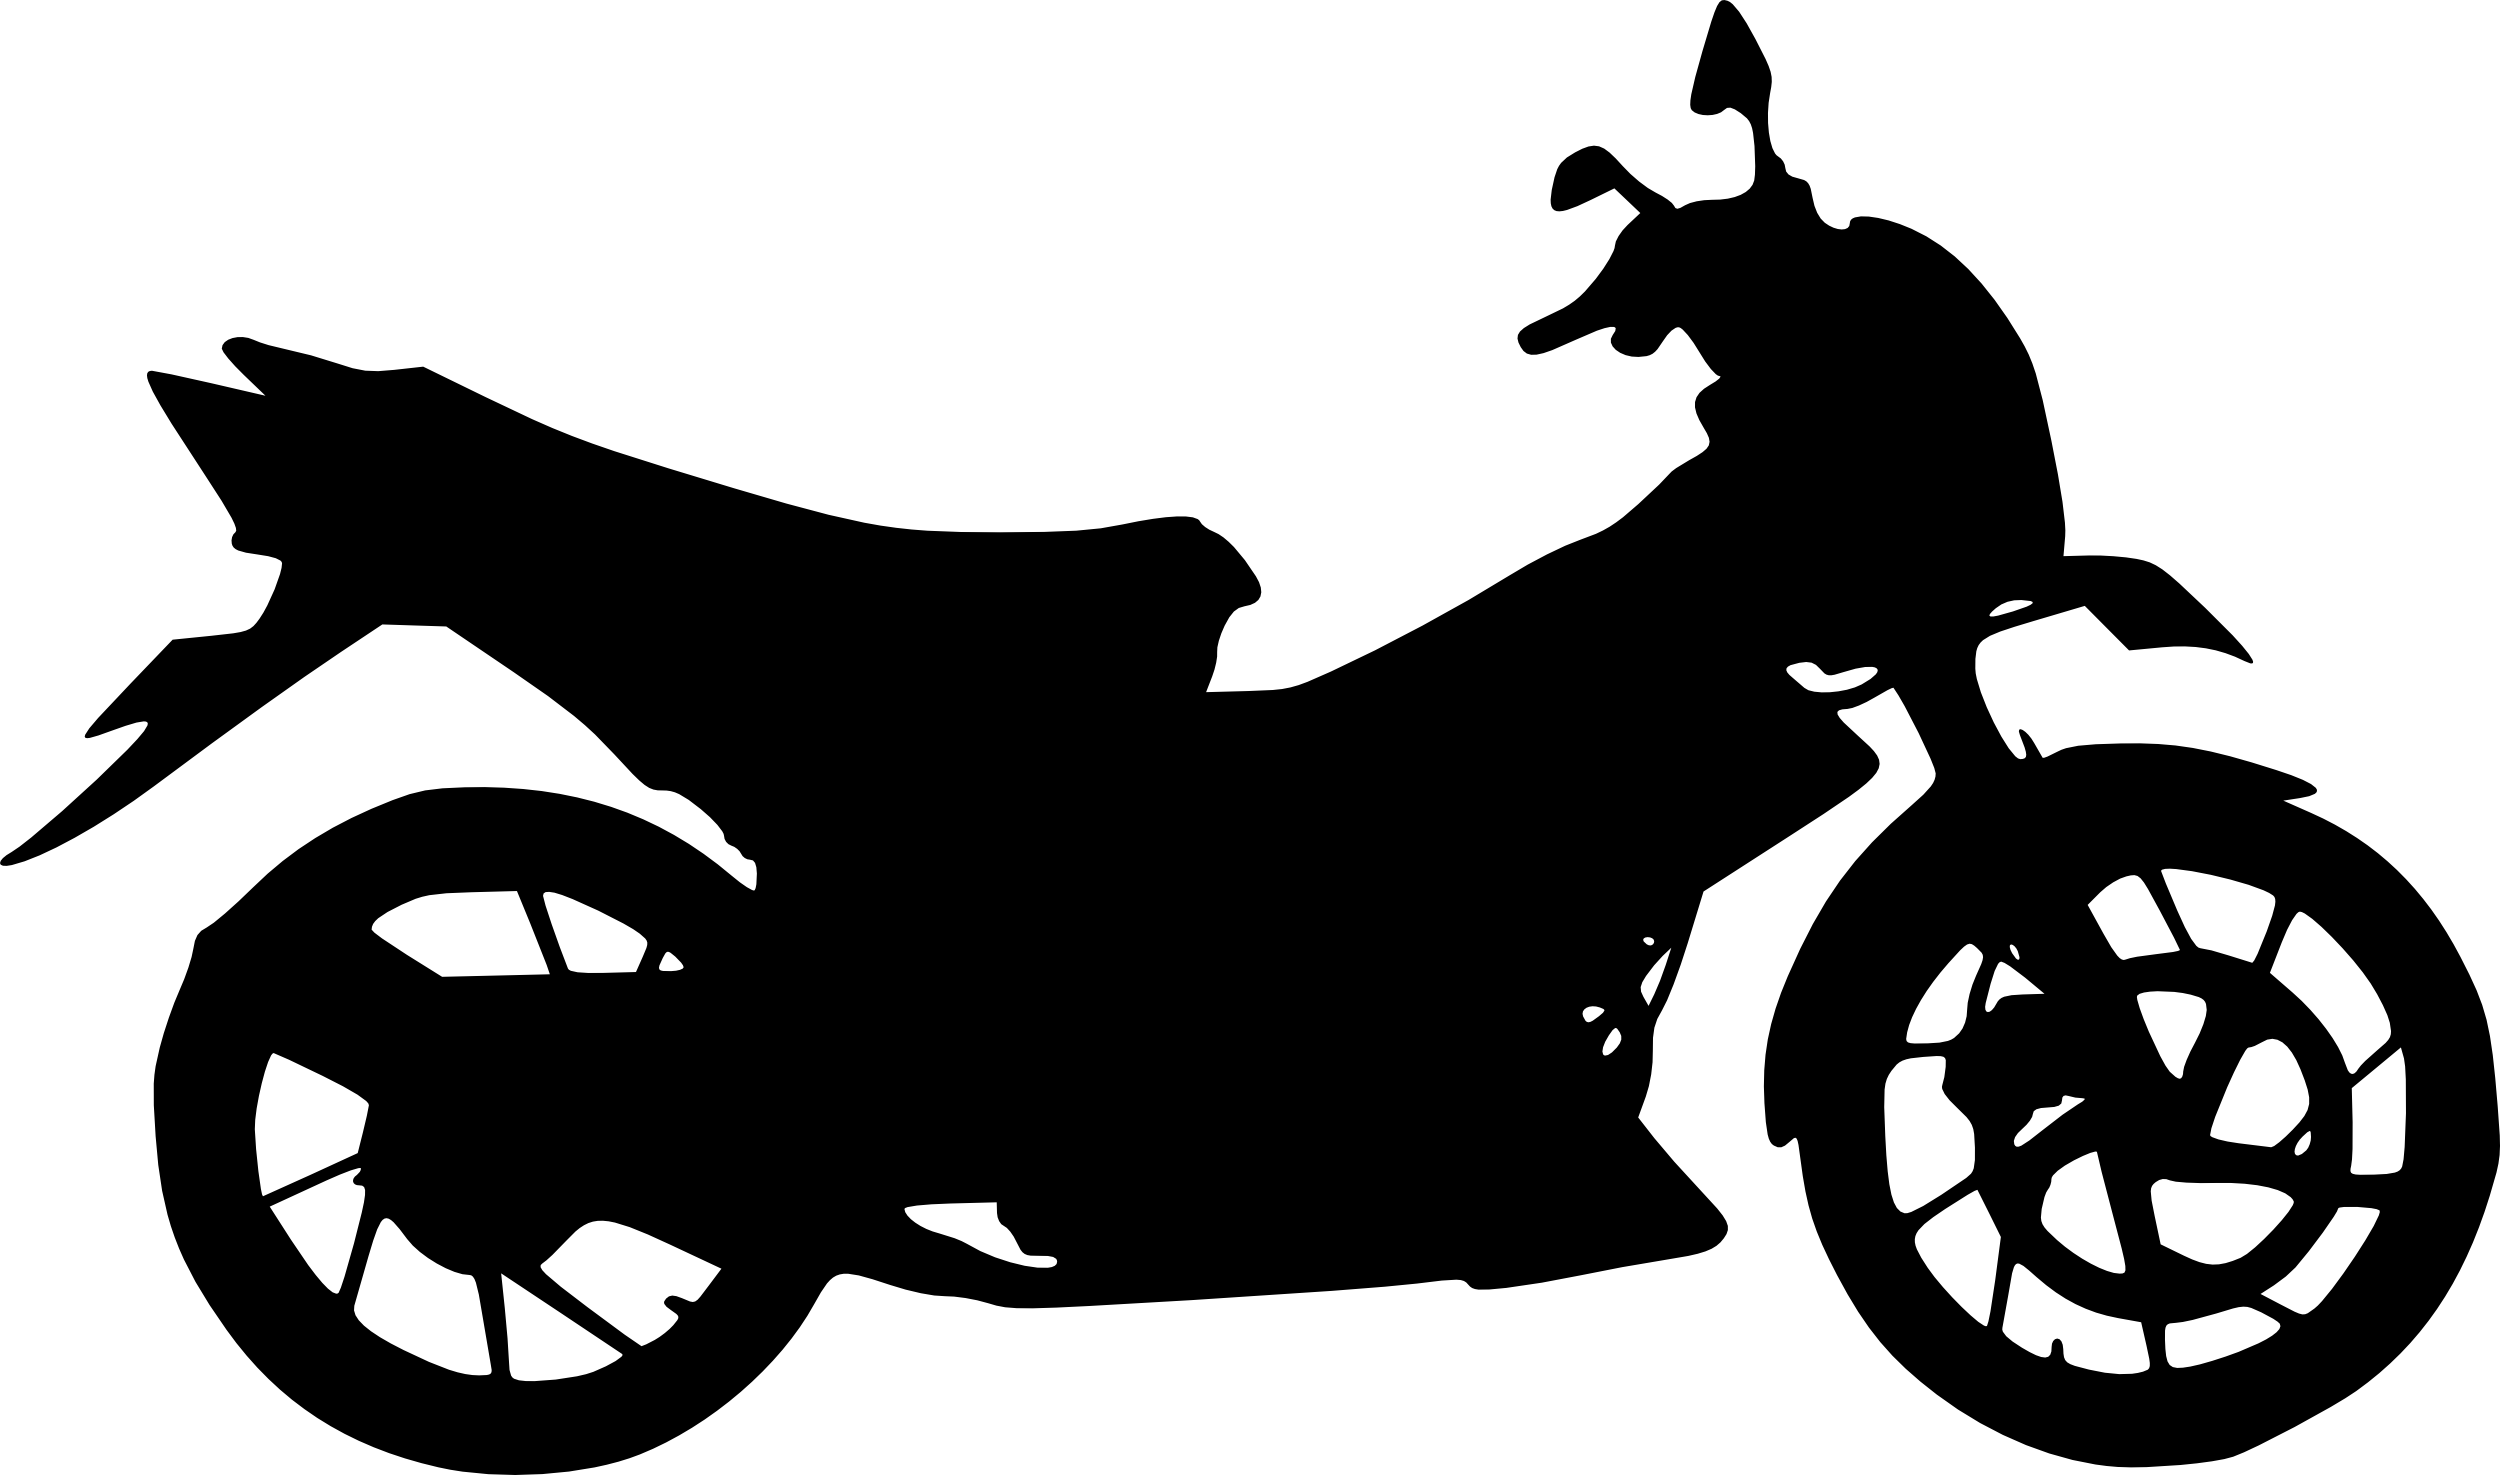 Silhouette images at getdrawings. Flames clipart motorcycle